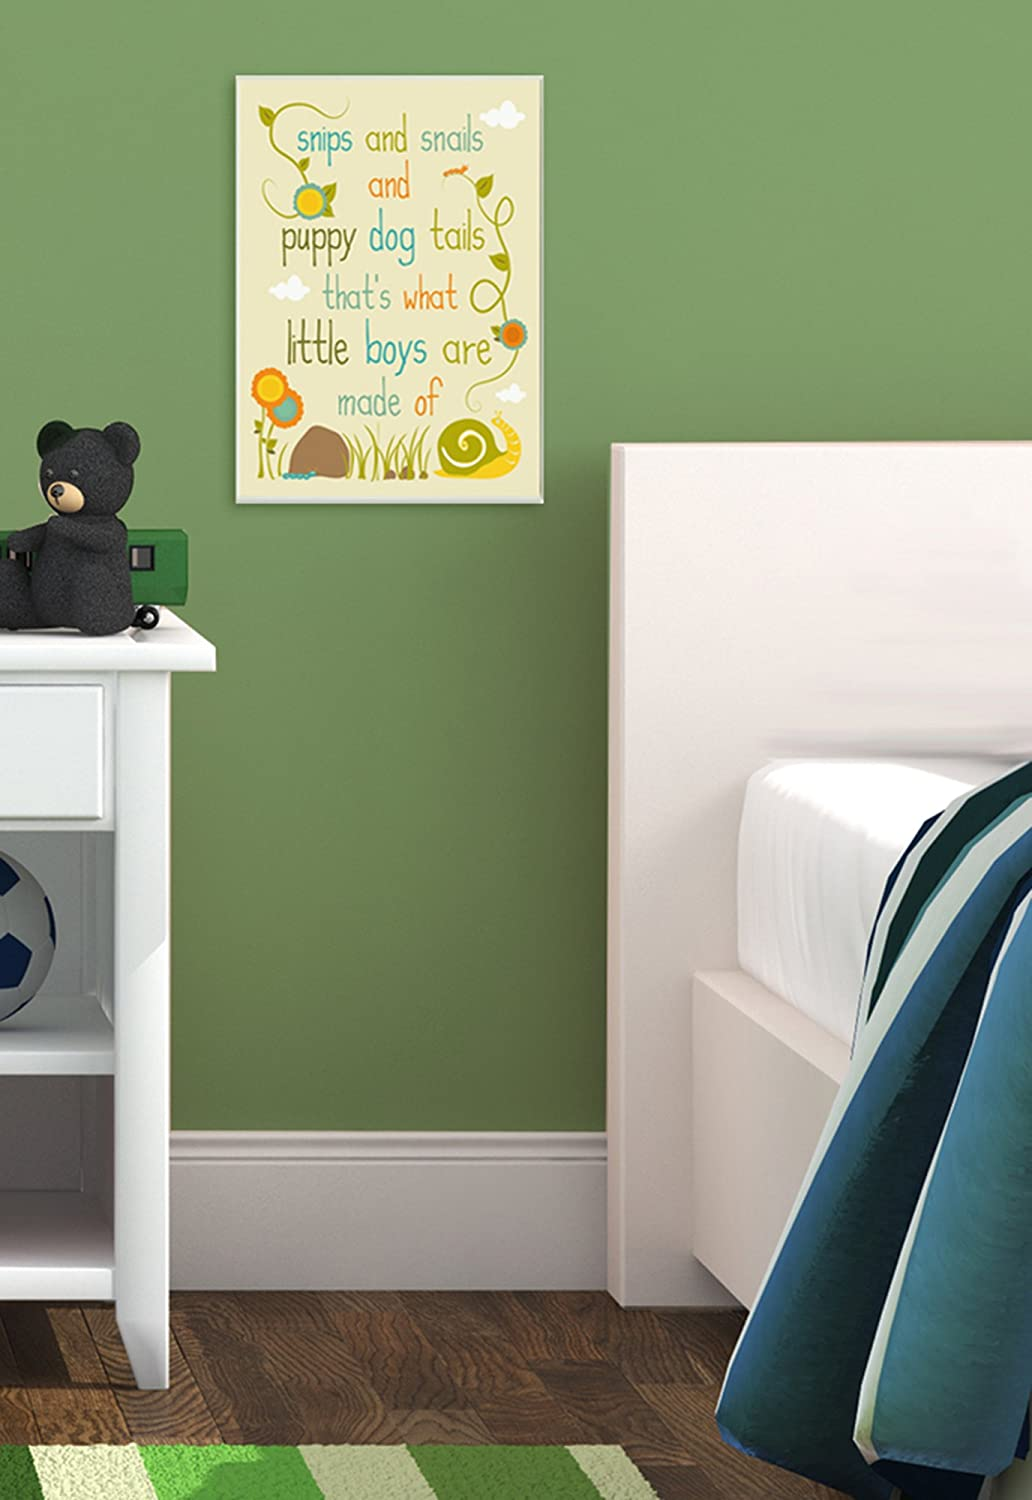 The Kids Room by Stupell Textual Art Wall Plaque A Noise with Glitter on It